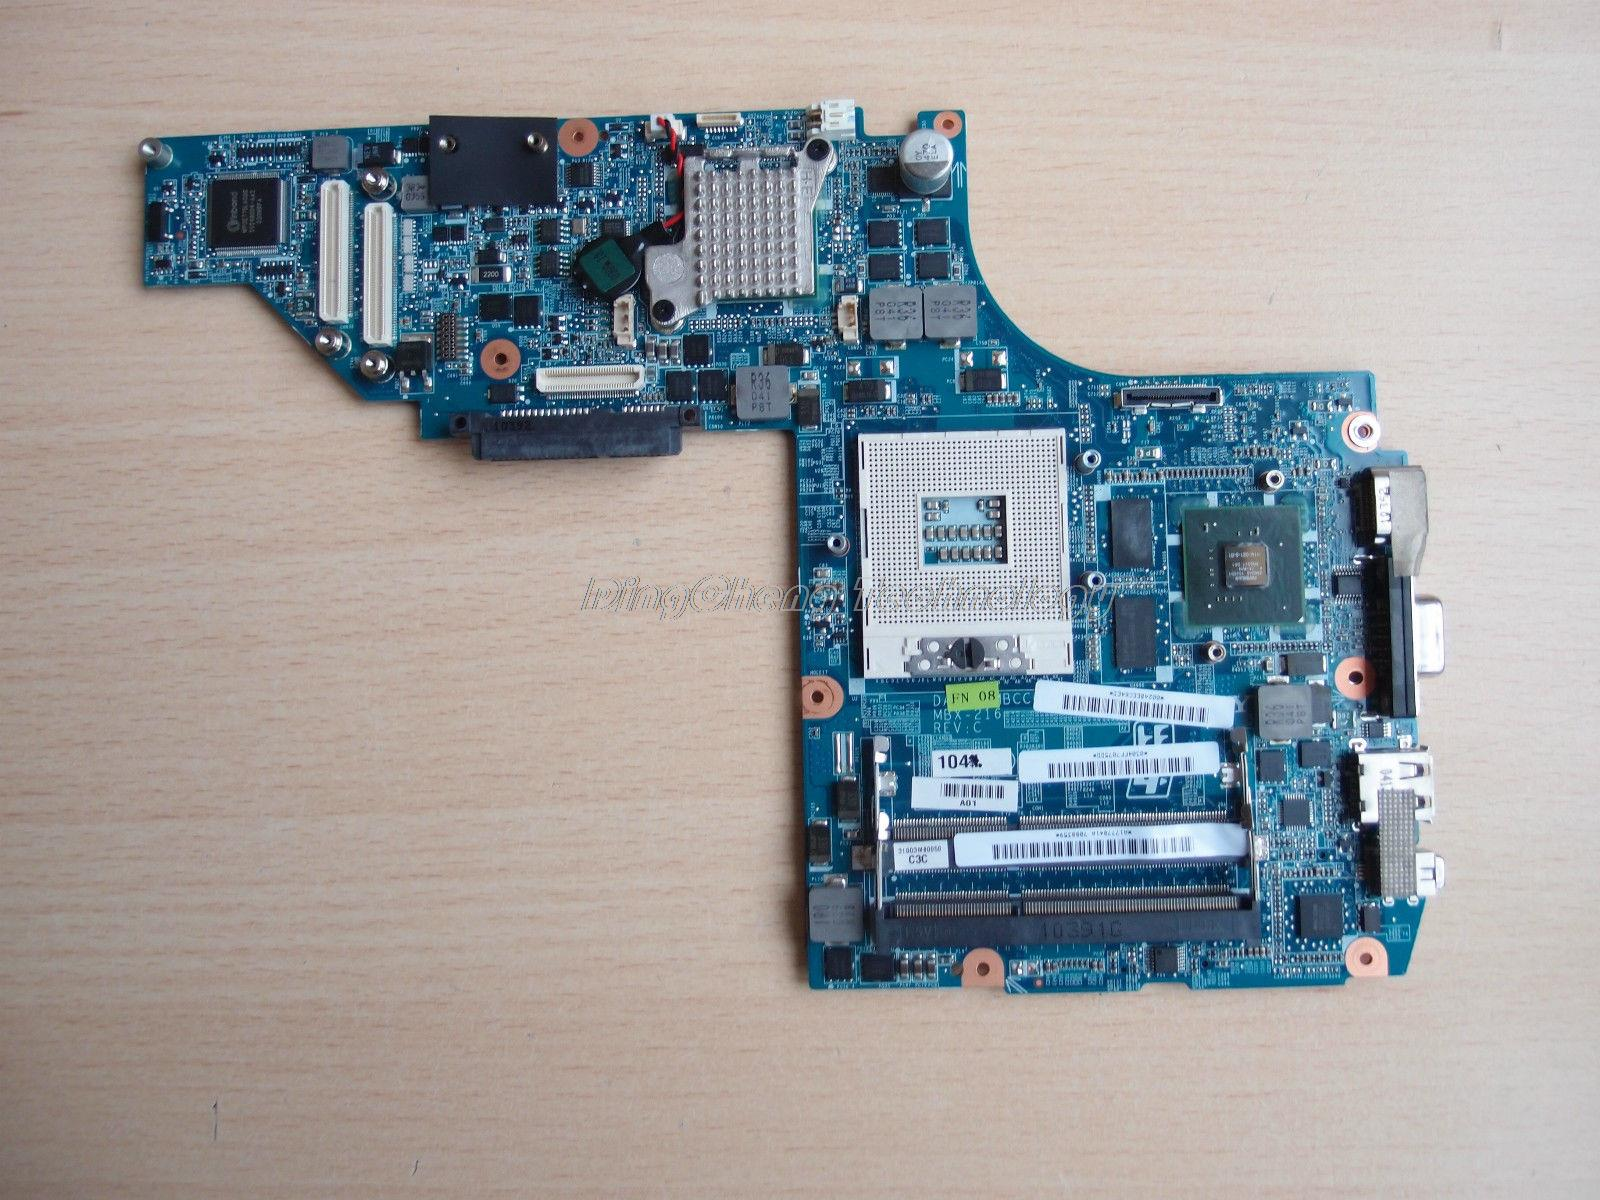 SHELI MBX 216 laptop Motherboard For Sony VPS111FM MBX-216 A1795846A DAGD3AMBCC0 for intel cpu with non-integrated graphics card sheli mbx 165 laptop motherboard for sony mbx 165 ms91 a1369748b 1p 0076500 8010 for intel cpu with non integrated graphics card